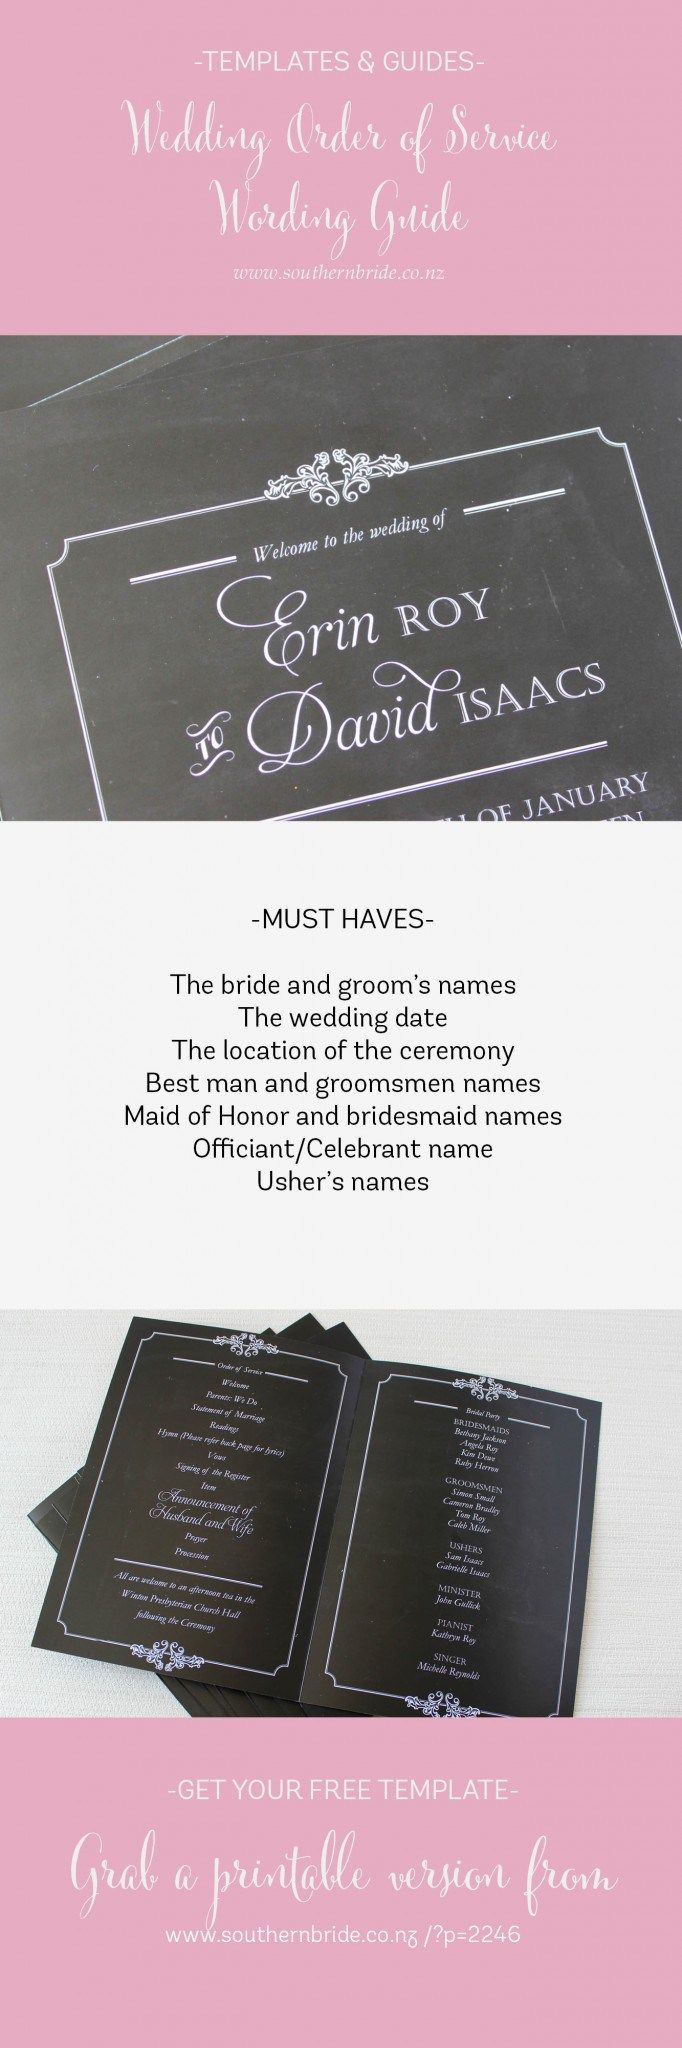 Wedding Order of Service Wording Template http://www.southernbride.co.nz/wedding-order-service-wording-template/